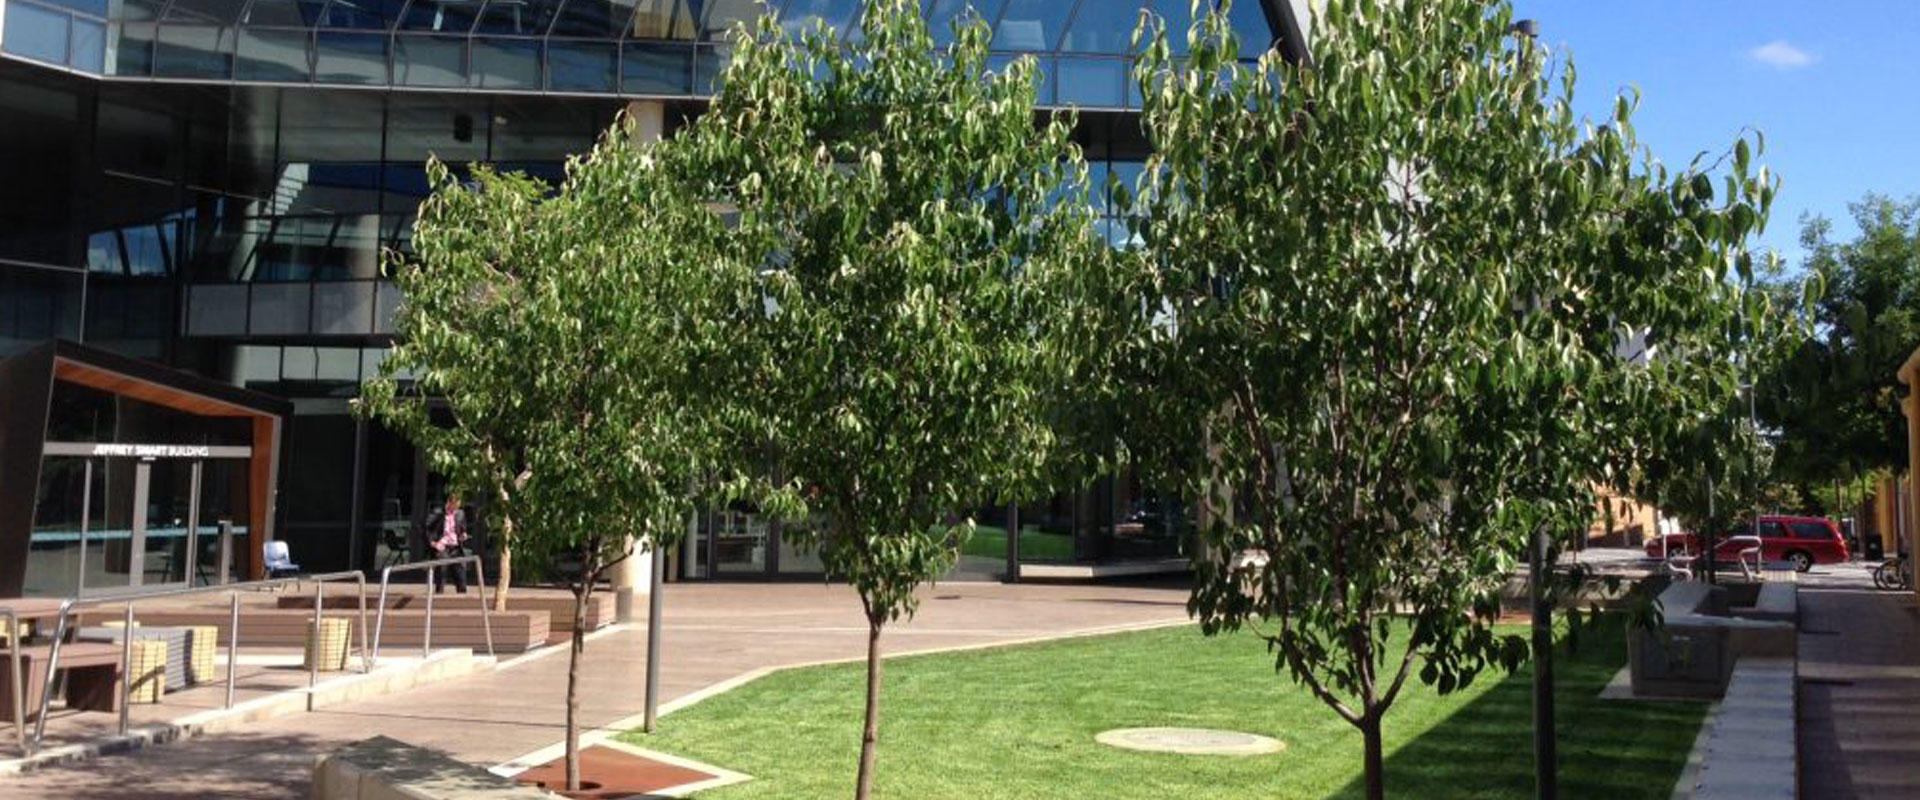 Adelaide City Council Established Tree Planting